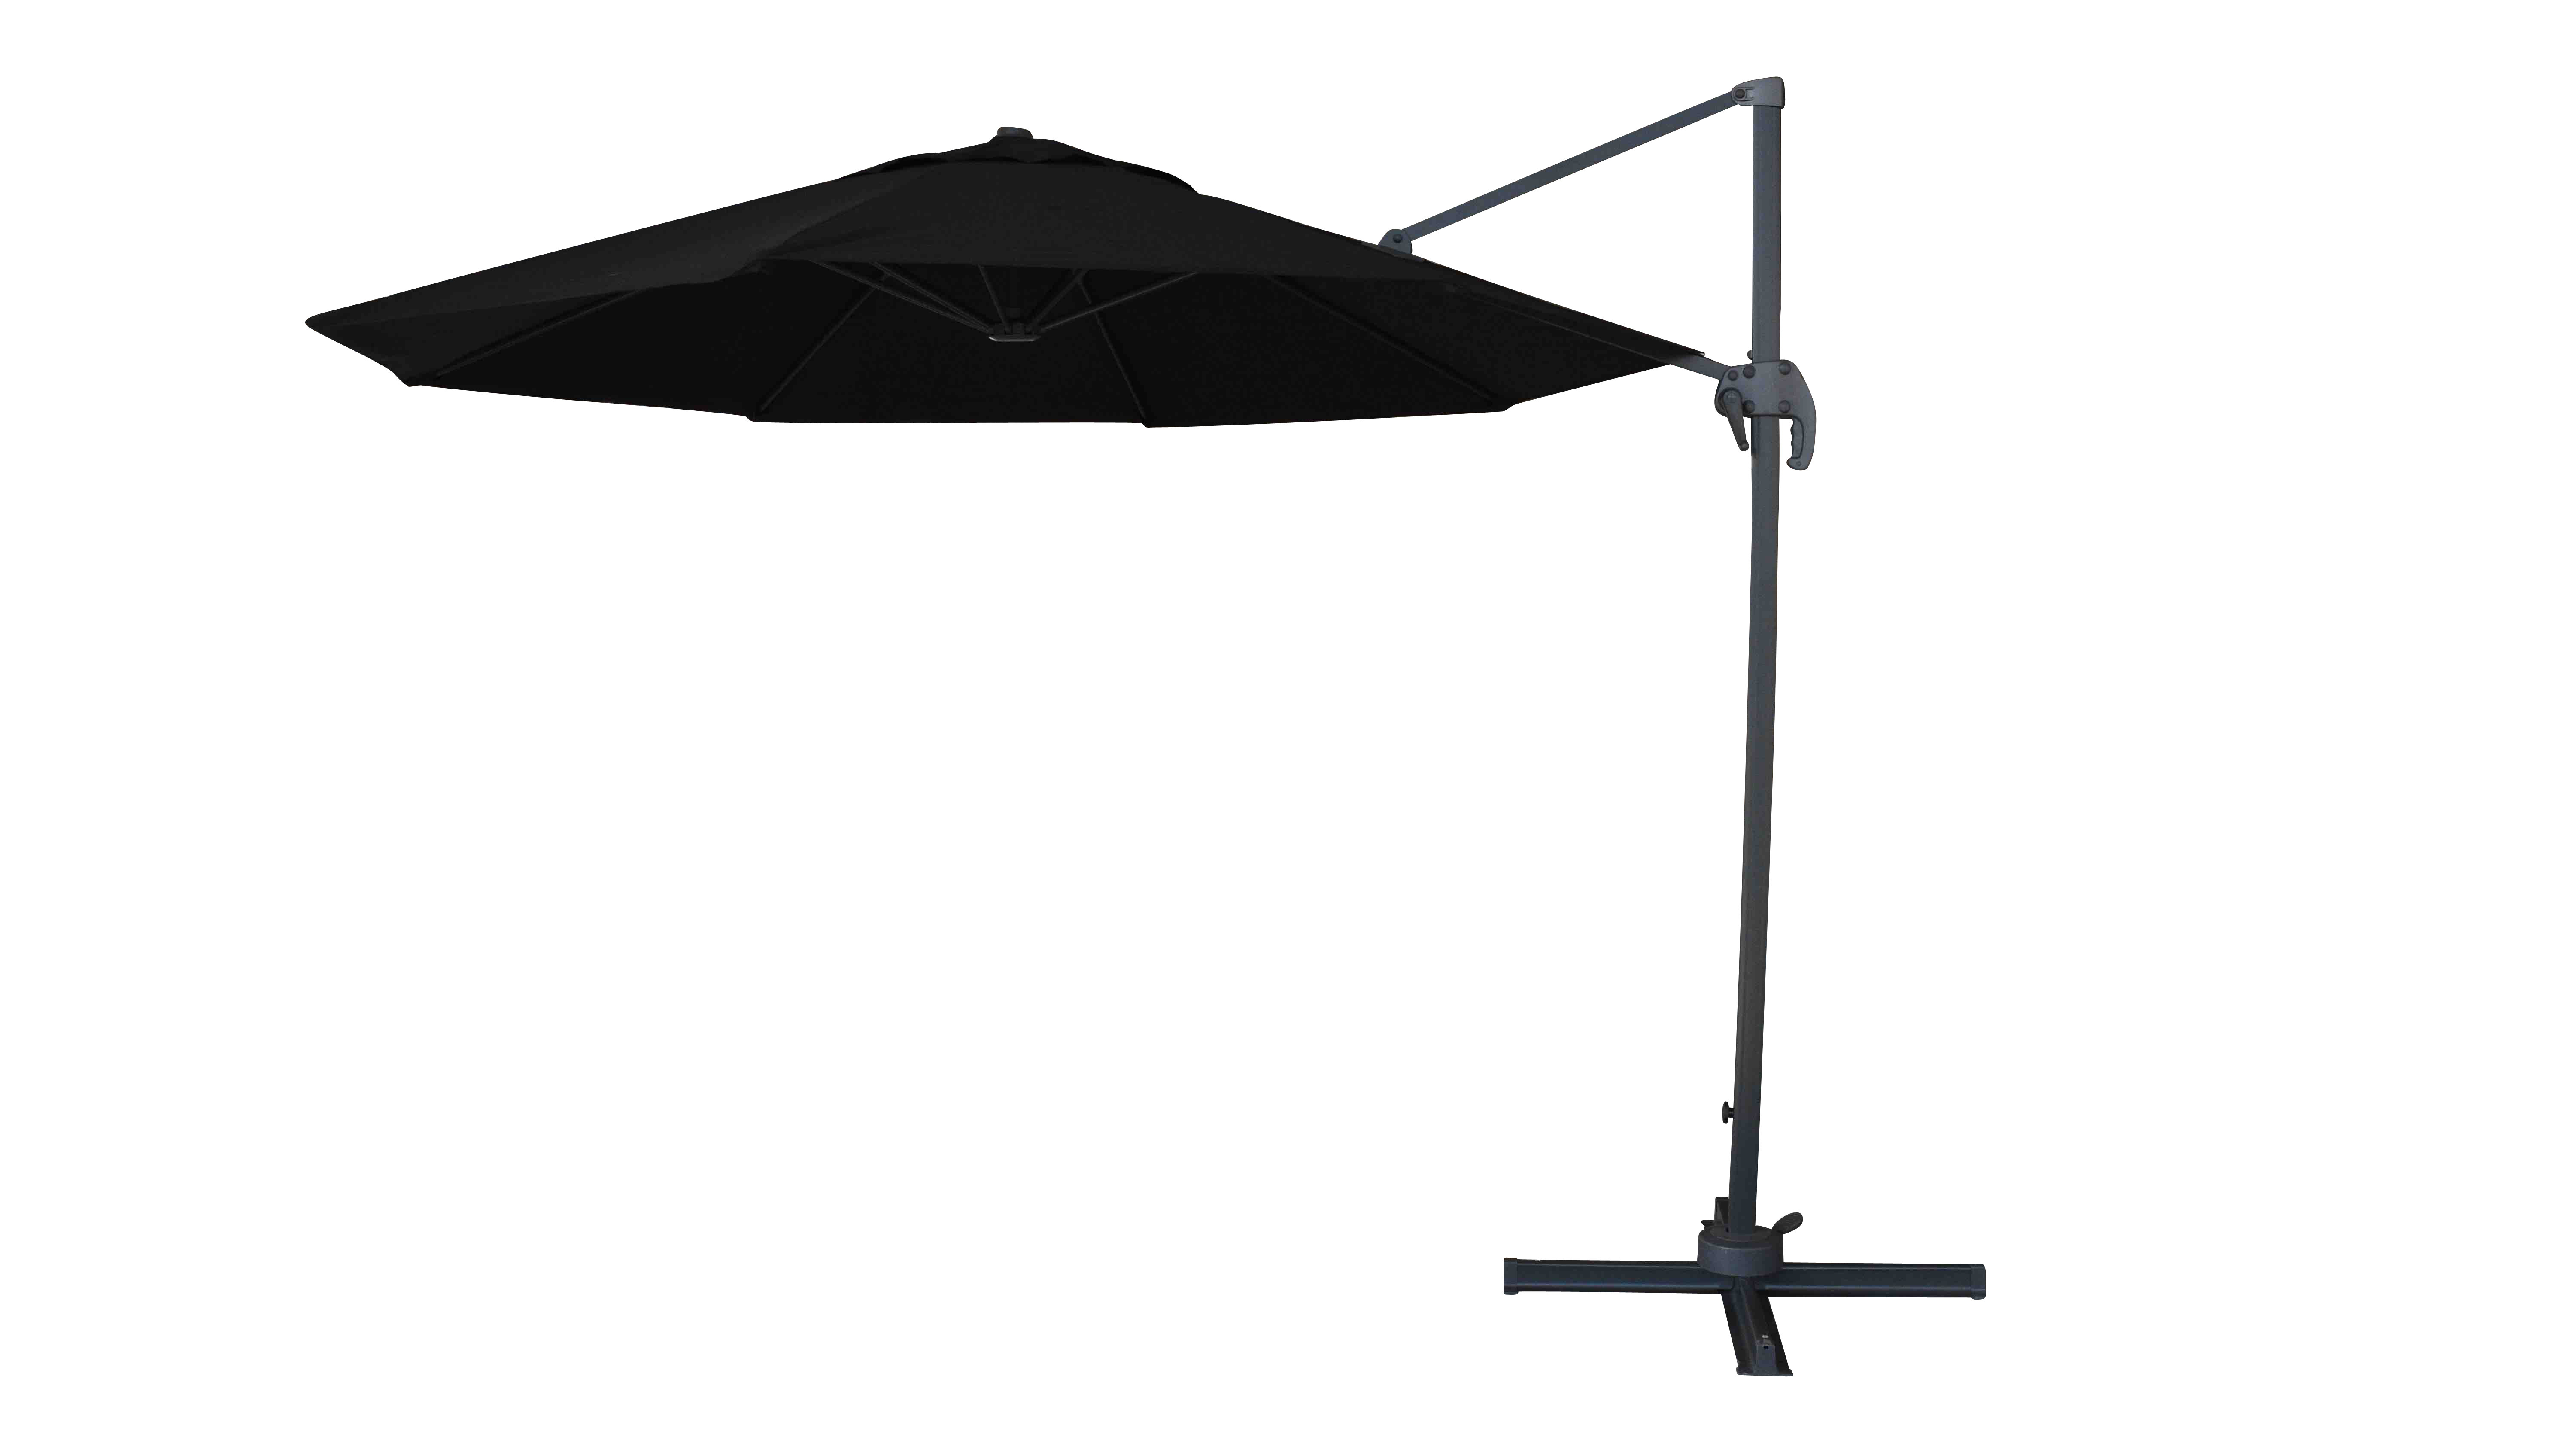 2020 Irven Cantilever Umbrellas Pertaining To Fareham 10' Cantilever Umbrella (View 3 of 20)